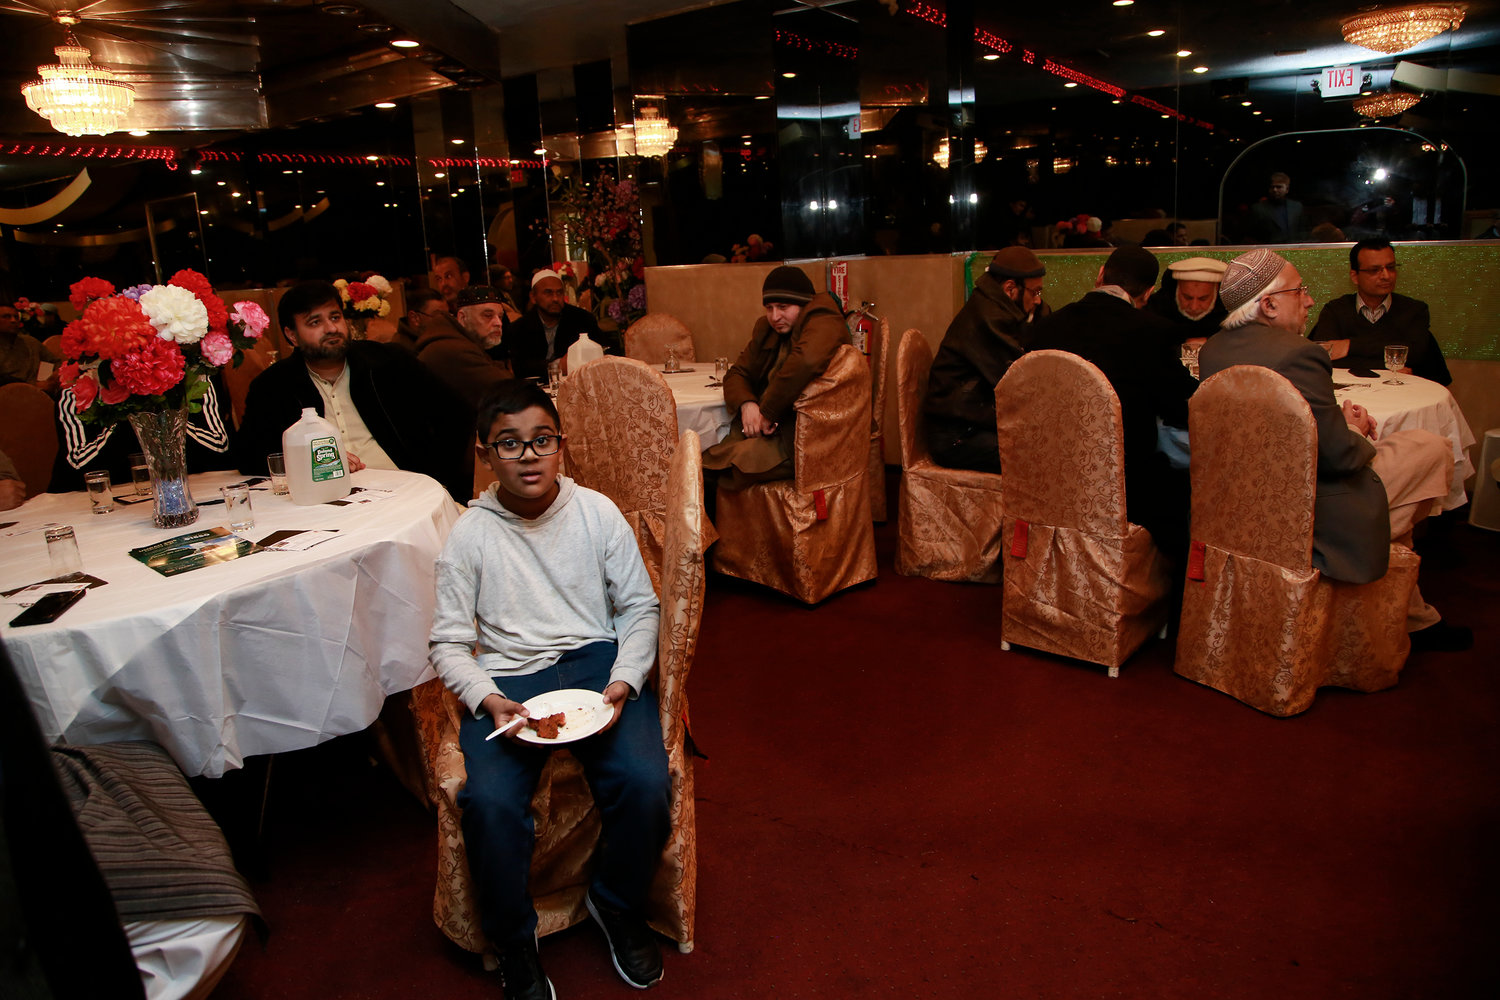 Dozens of local Muslims gathered at the Kabab King Mehal, in West Hempstead, for a fundraiser dinner to build a mosque on Hempstead Turnpike.